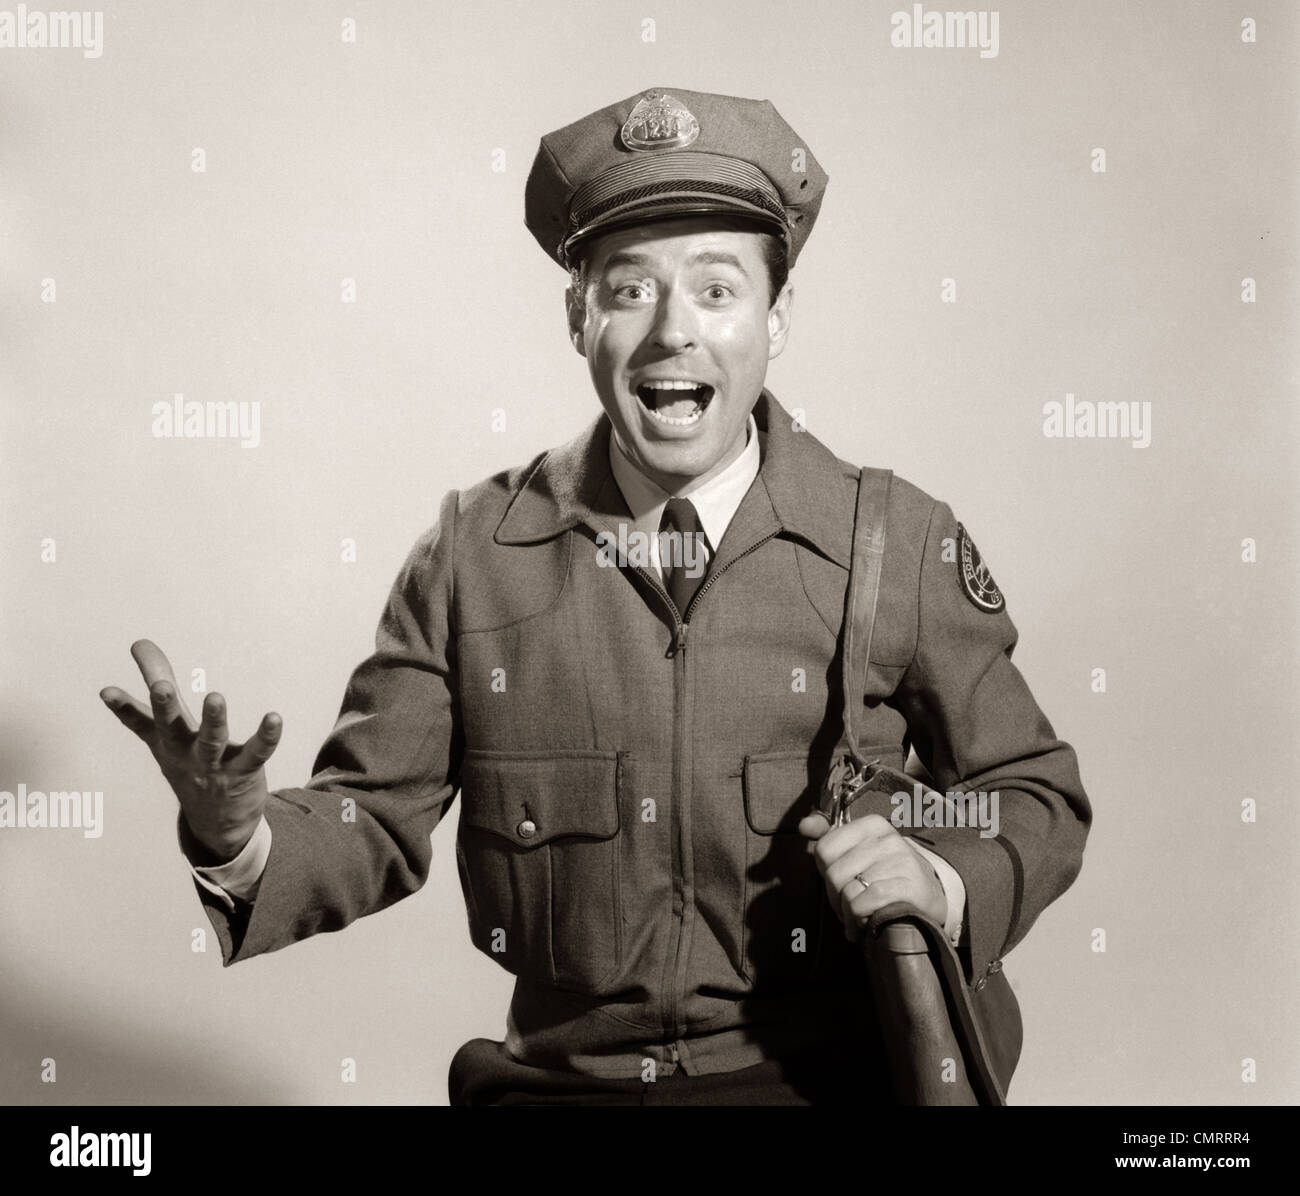 1960s STUDIO PORTRAIT OF HAPPY MAN MAILMAN POSTMAN LOOKING AT CAMERA - Stock Image